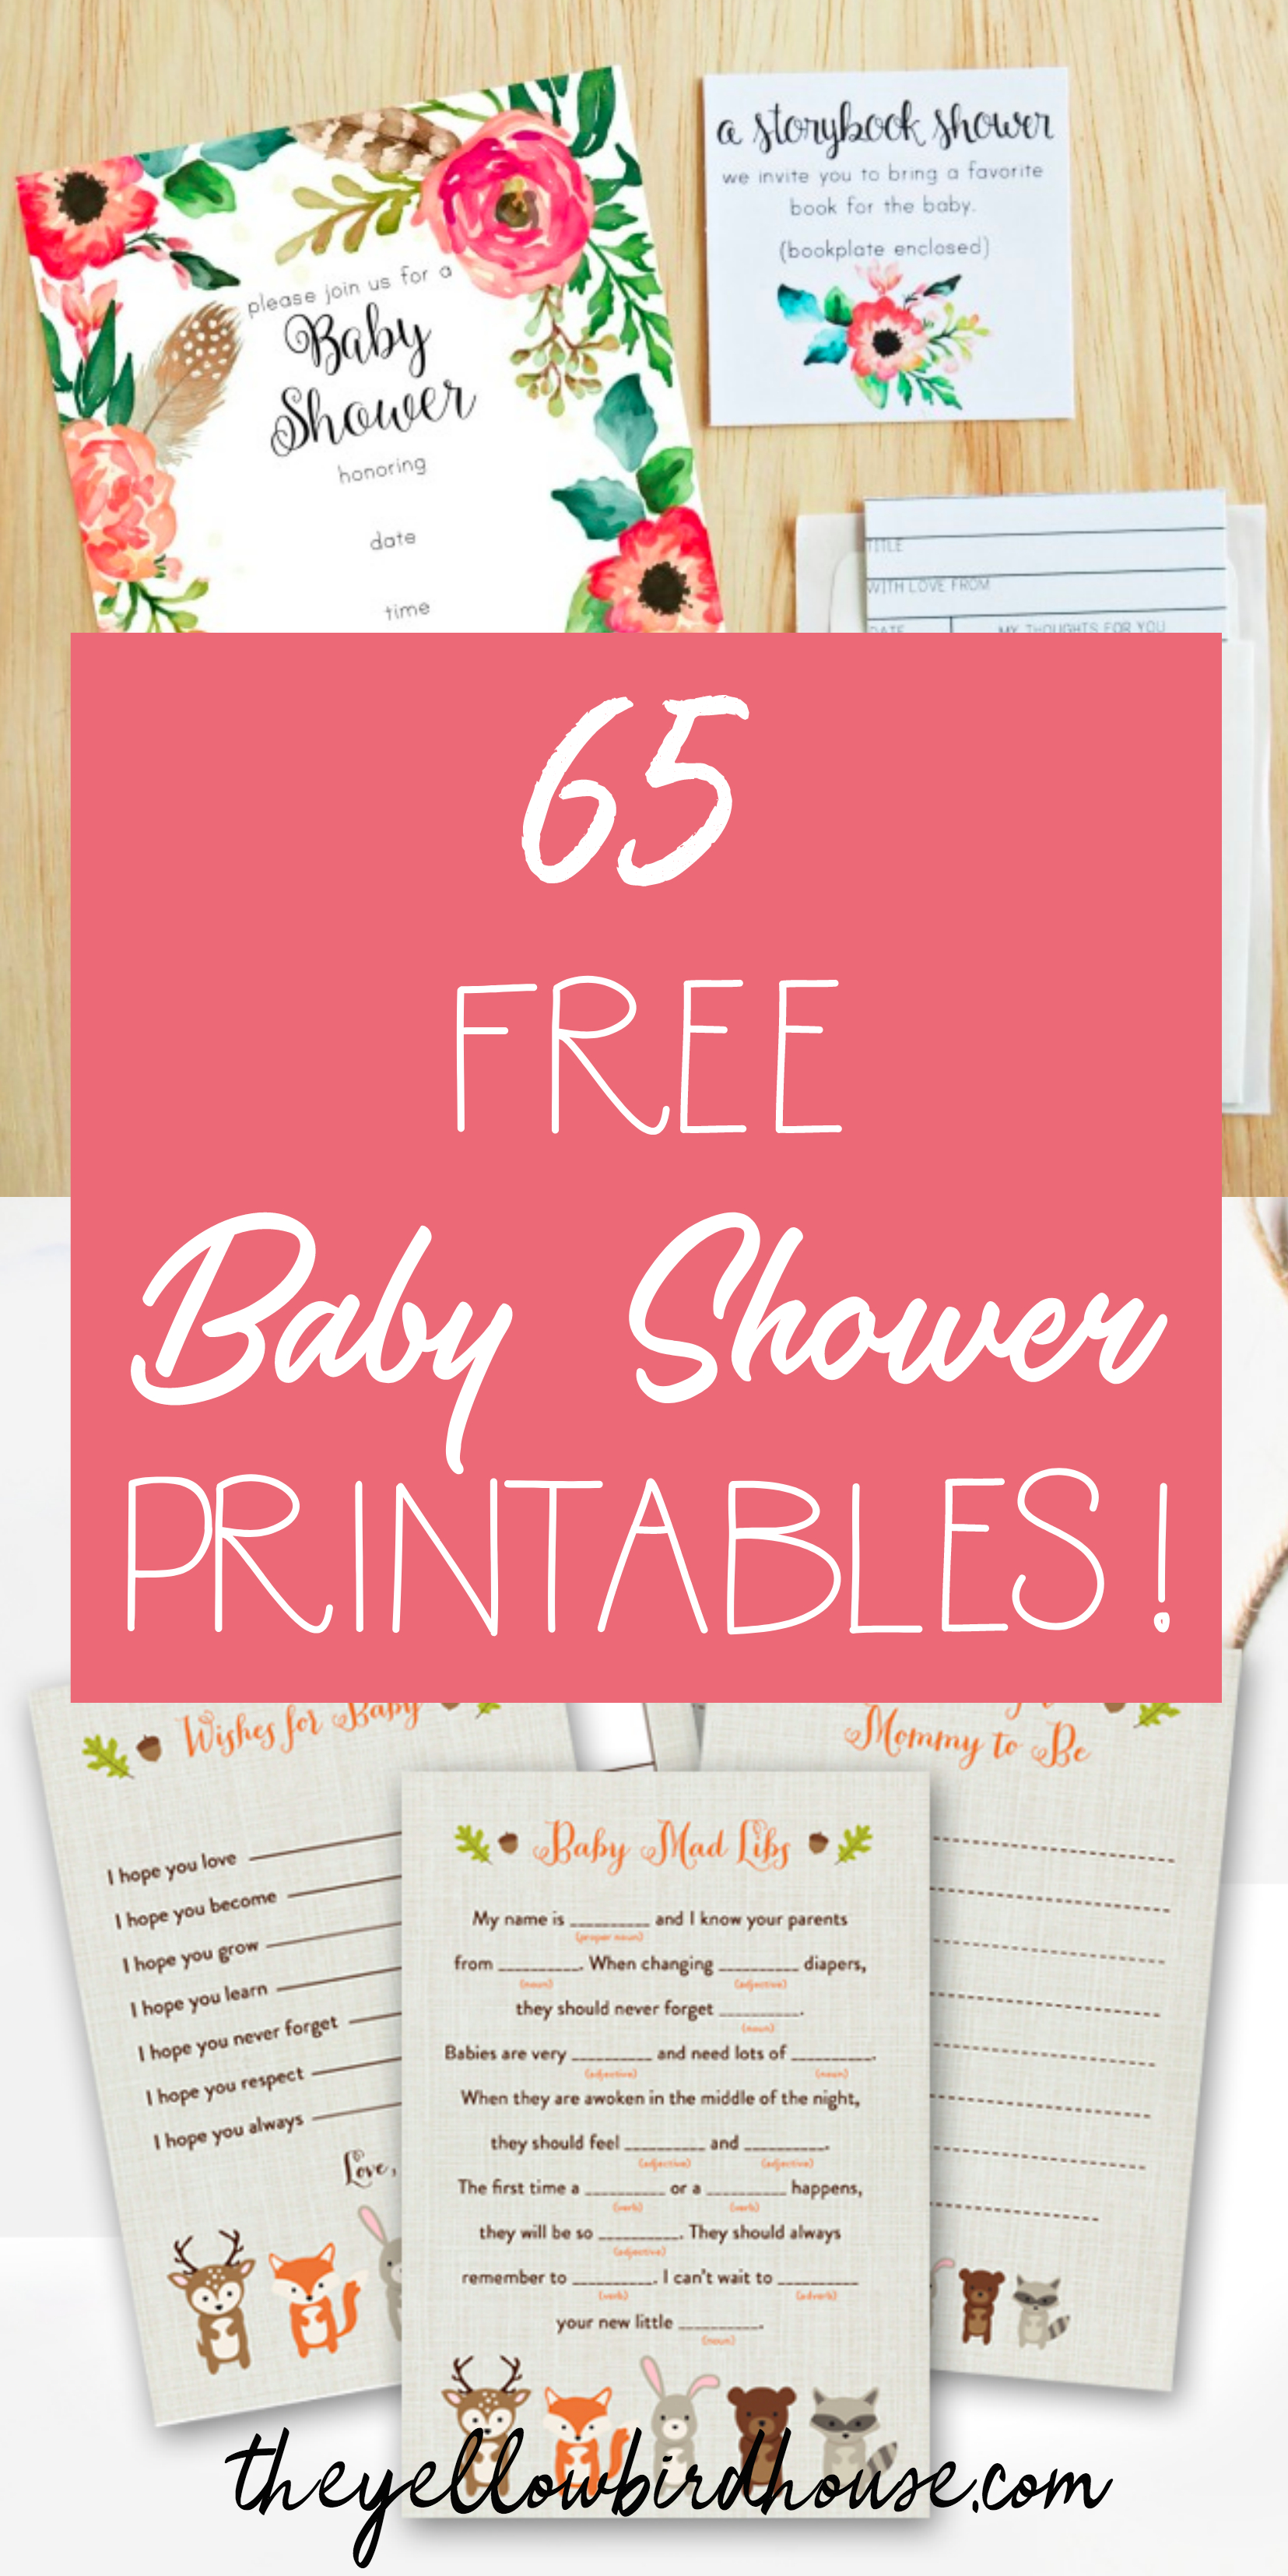 65 Free Baby Shower Printables For An Adorable Party - What's In The Diaper Bag Game Free Printable